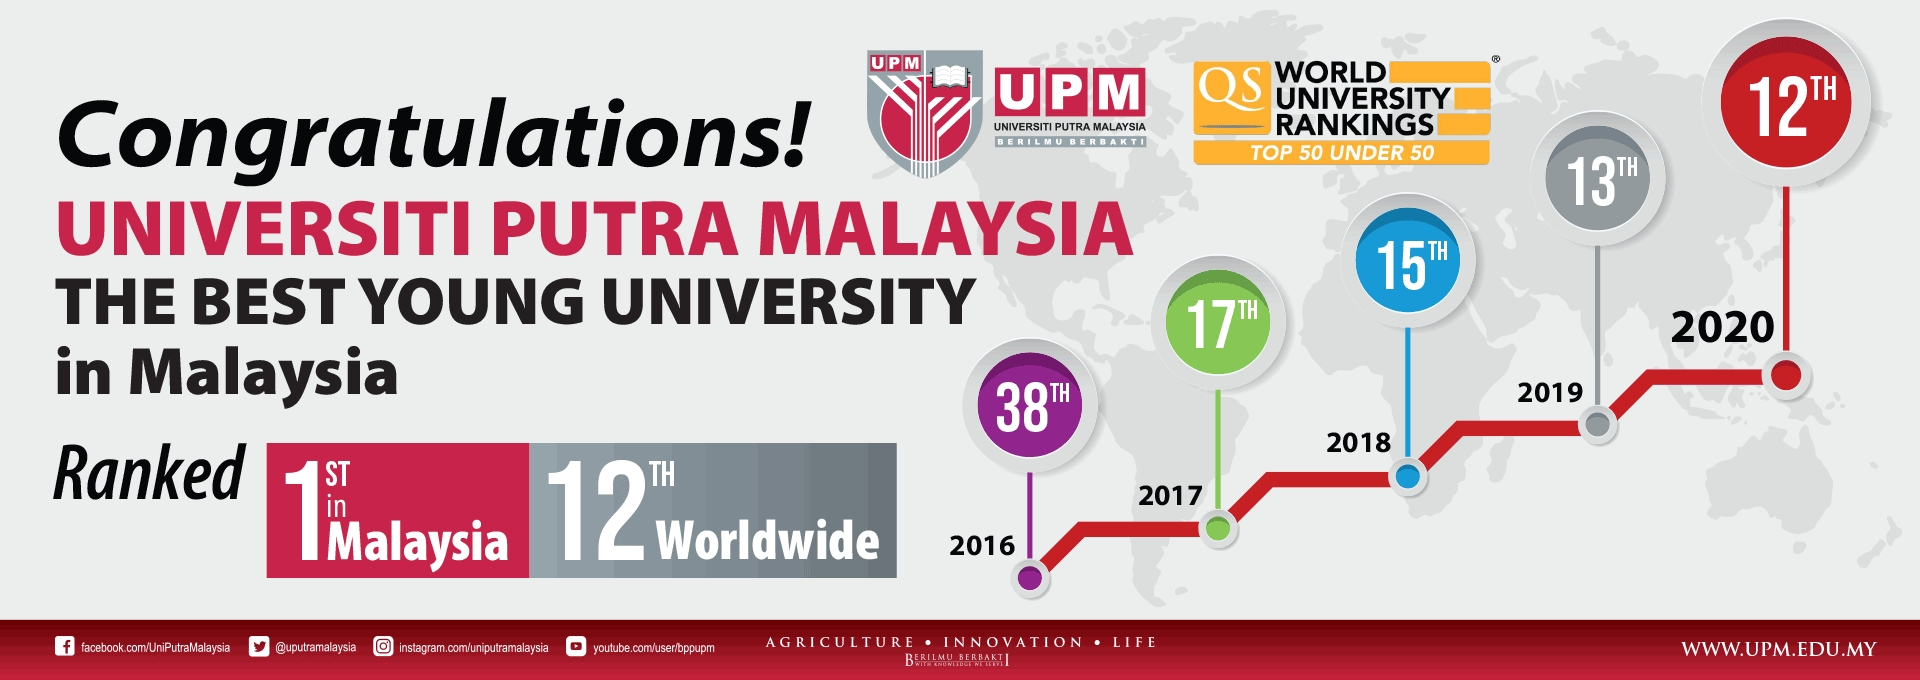 UPM is ranked first in Malaysia and 12th globally in the QS Top 50 under 50 Rankings 2020.